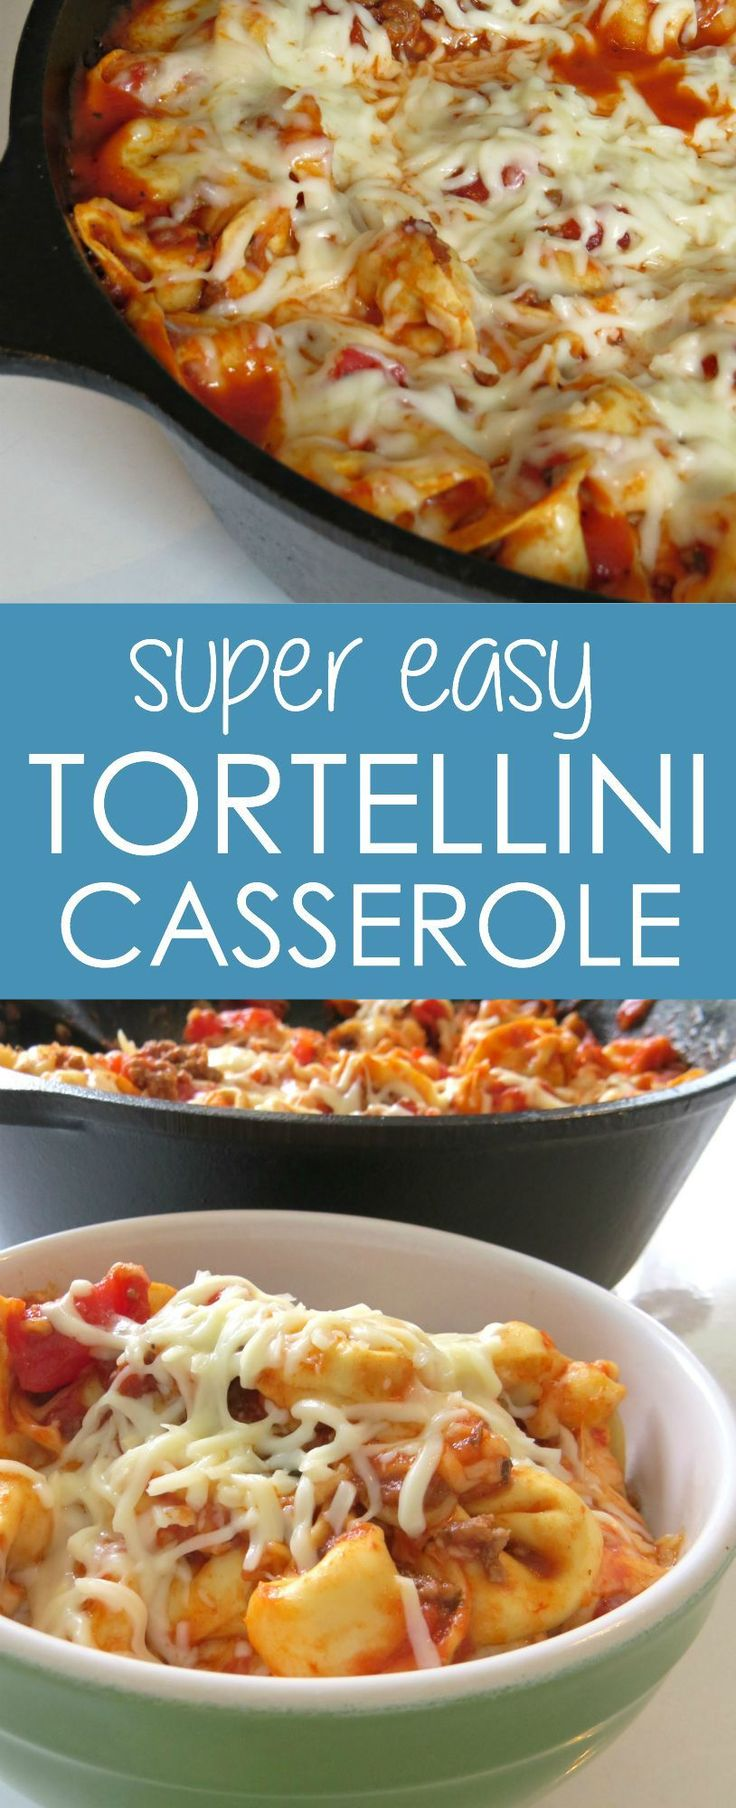 Baked Tortellini Casserole   One of my favorite pasta casserole recipes because there's cheese in the pasta itself! YUM.